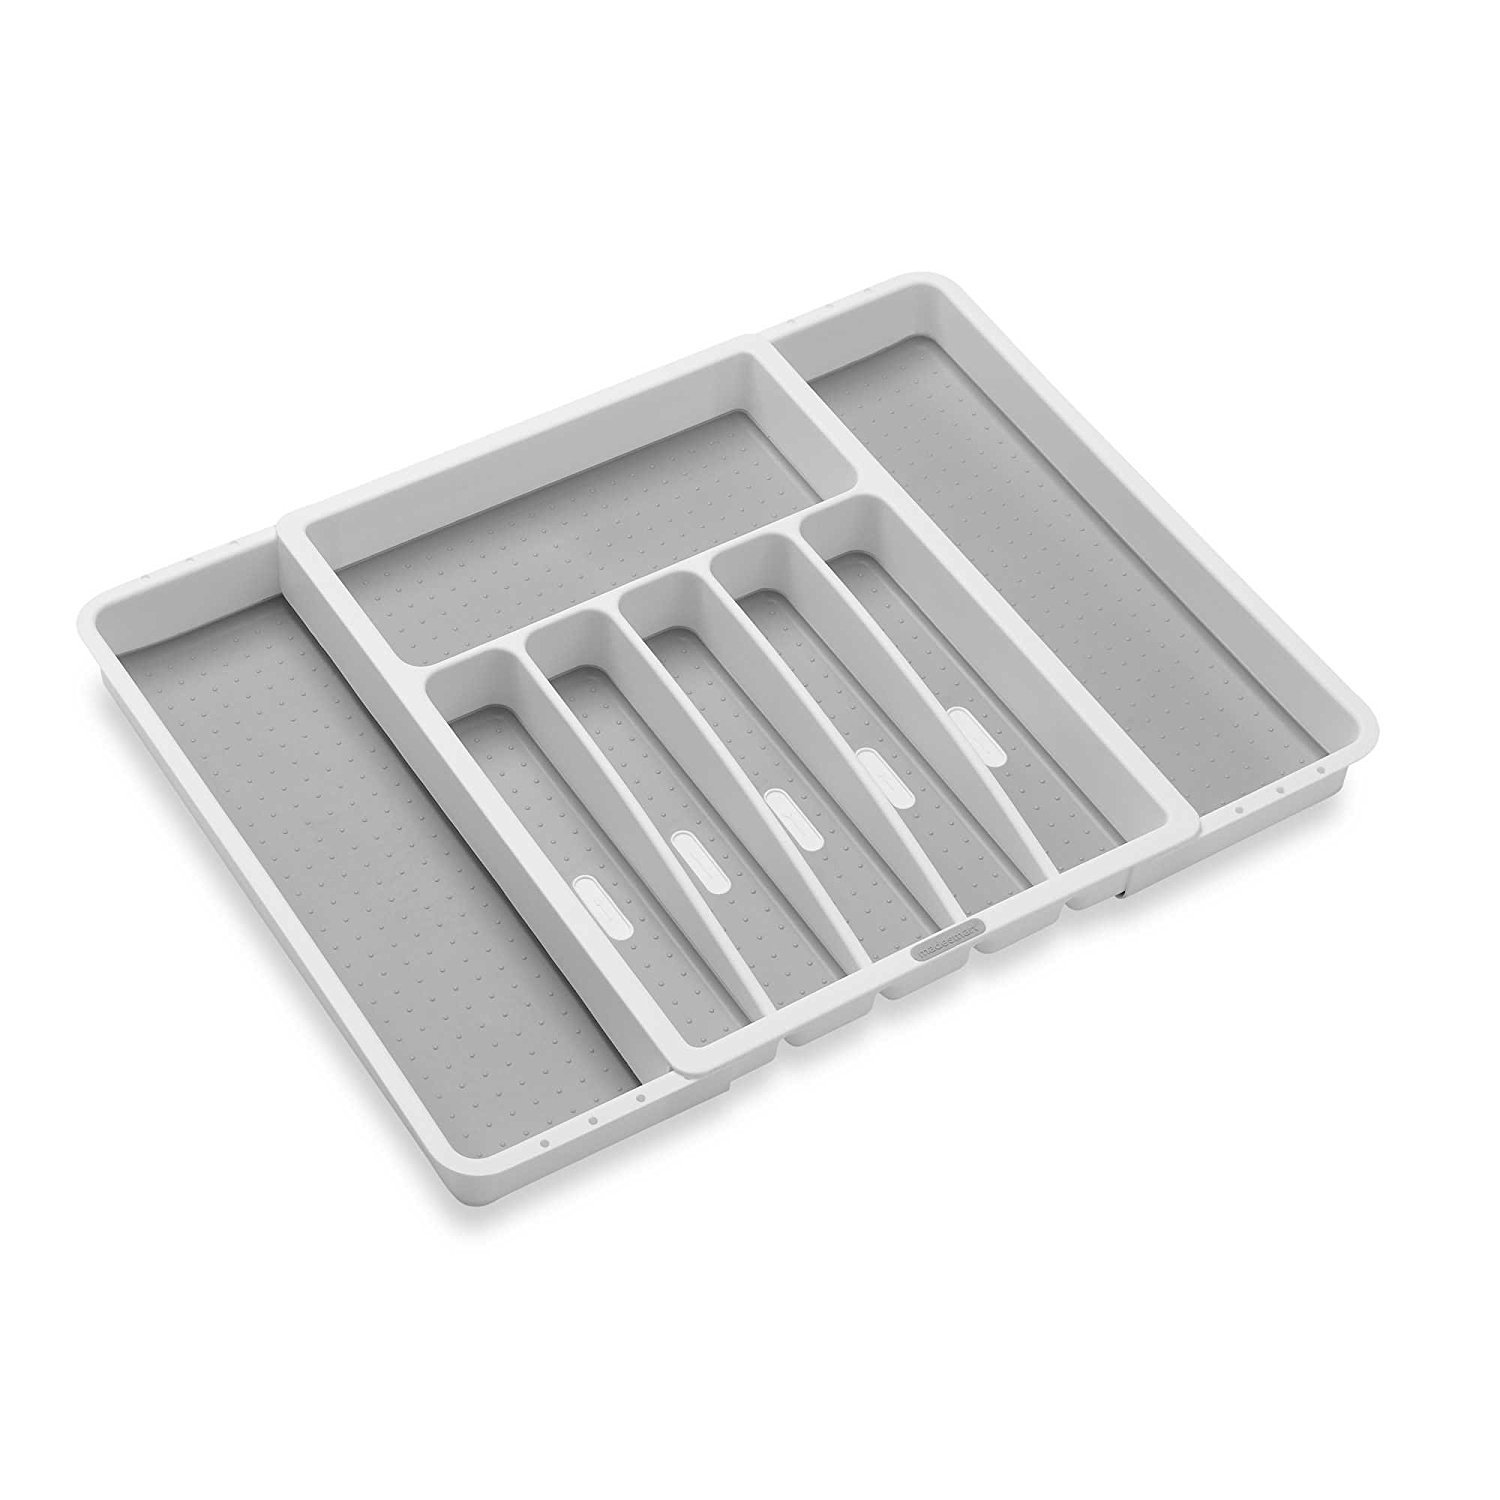 Expandable Andjustible Cutlery Tray (Expandable Six compartments)